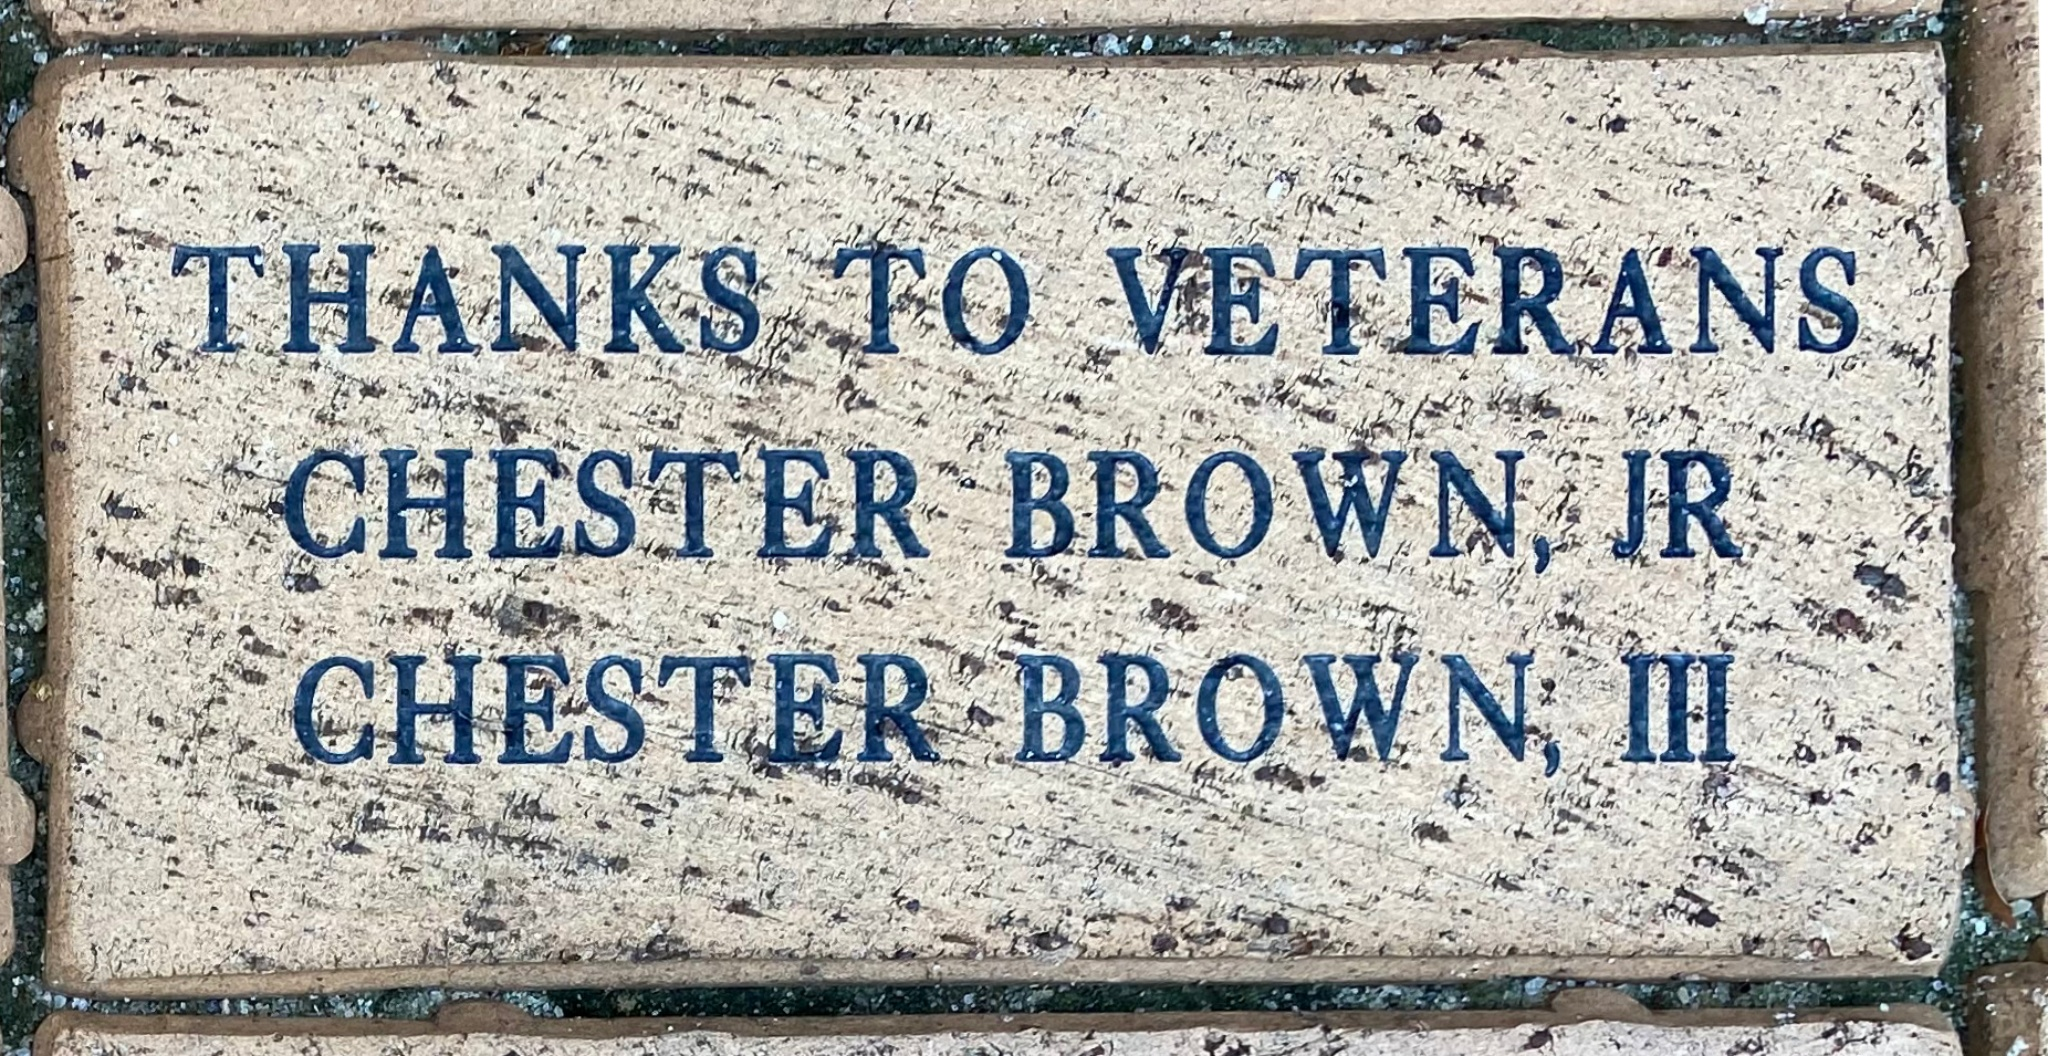 THANKS TO VETERANS CHESTER BROWN, JR CHESTER BROWN, III